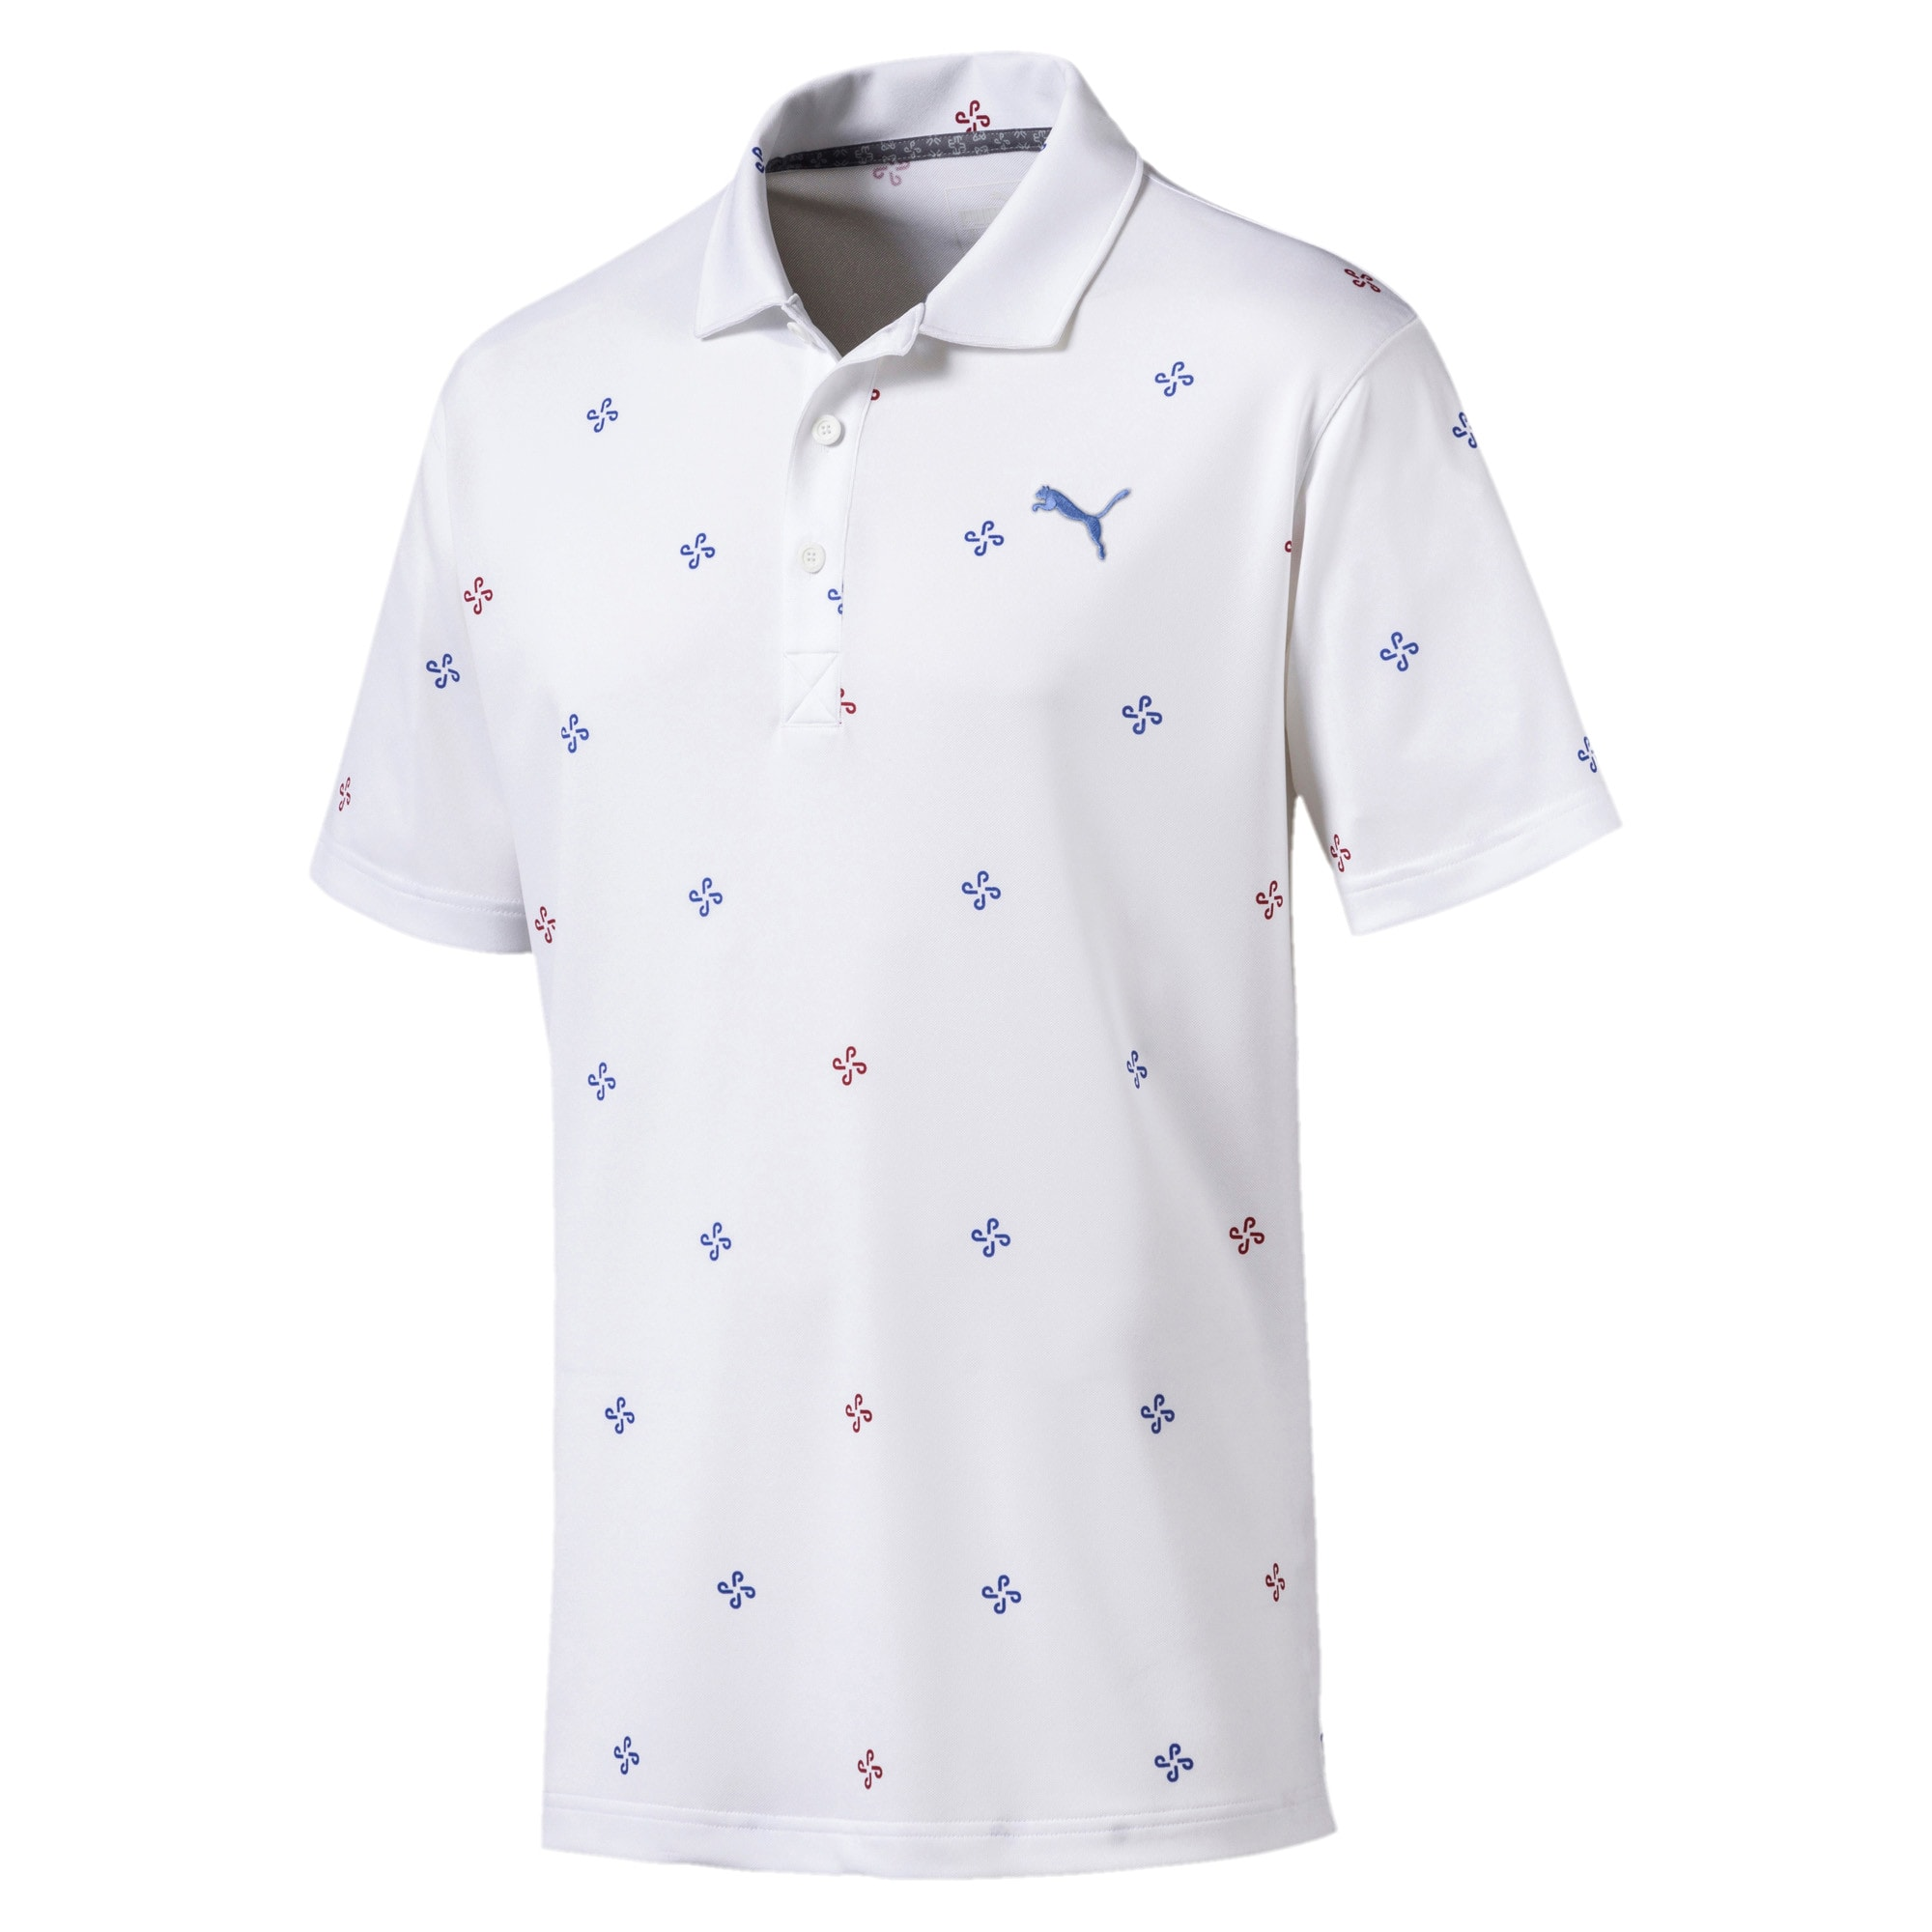 Ditsy Men's Golf Polo, Bright White, large